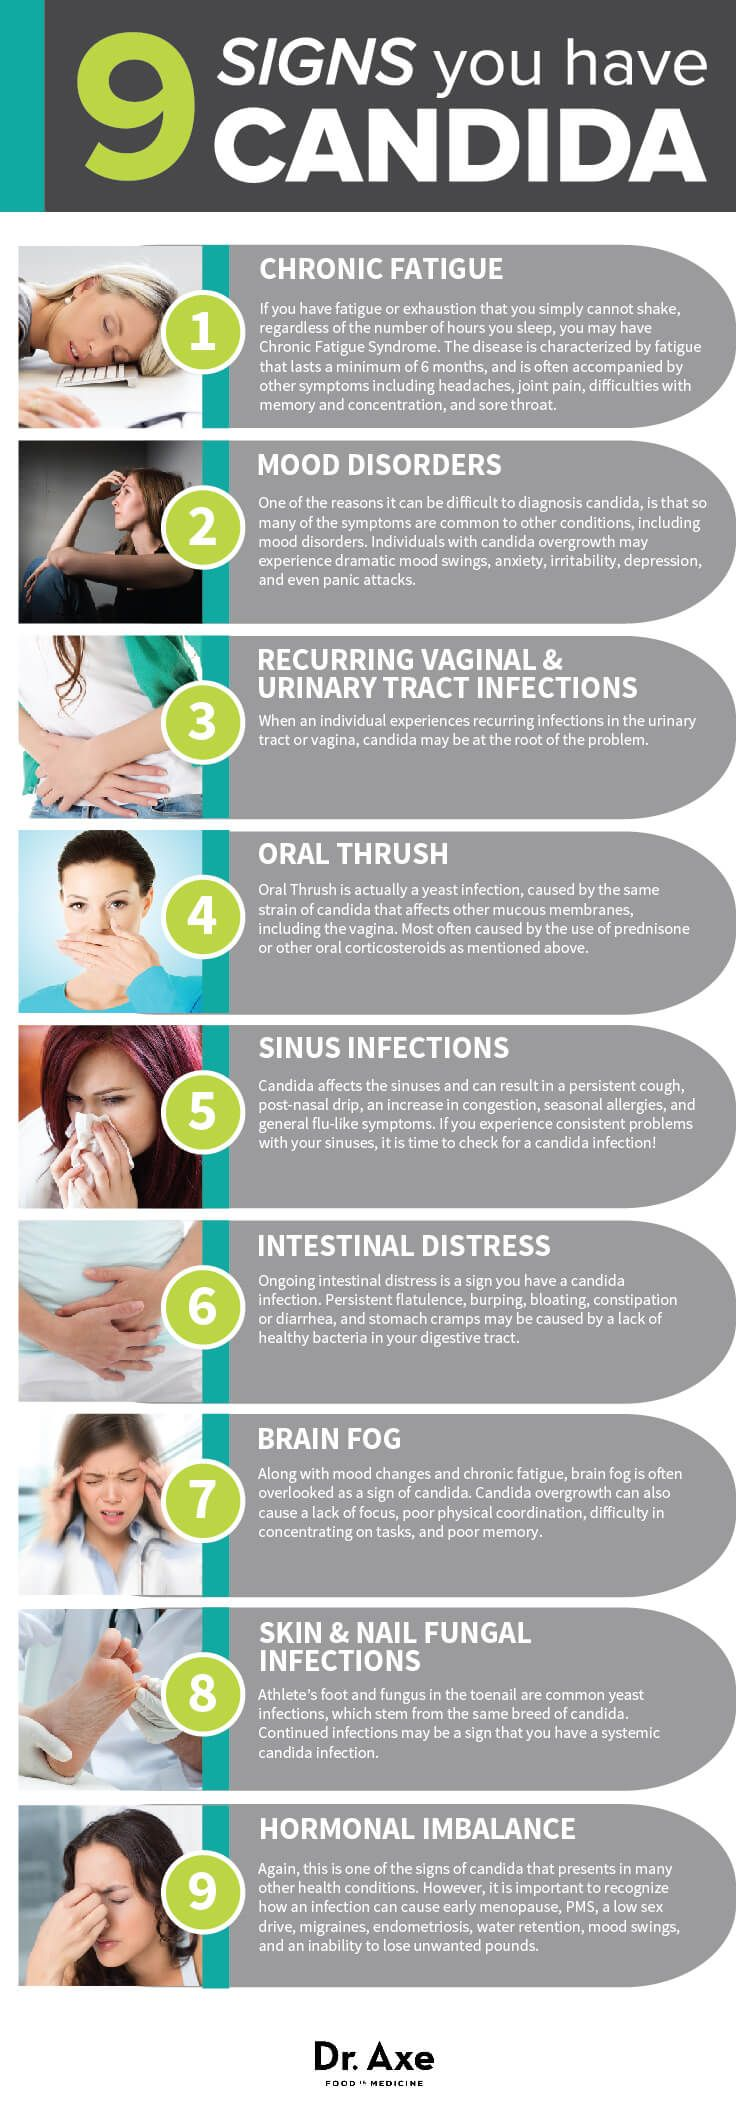 9 Signs You Have Candida